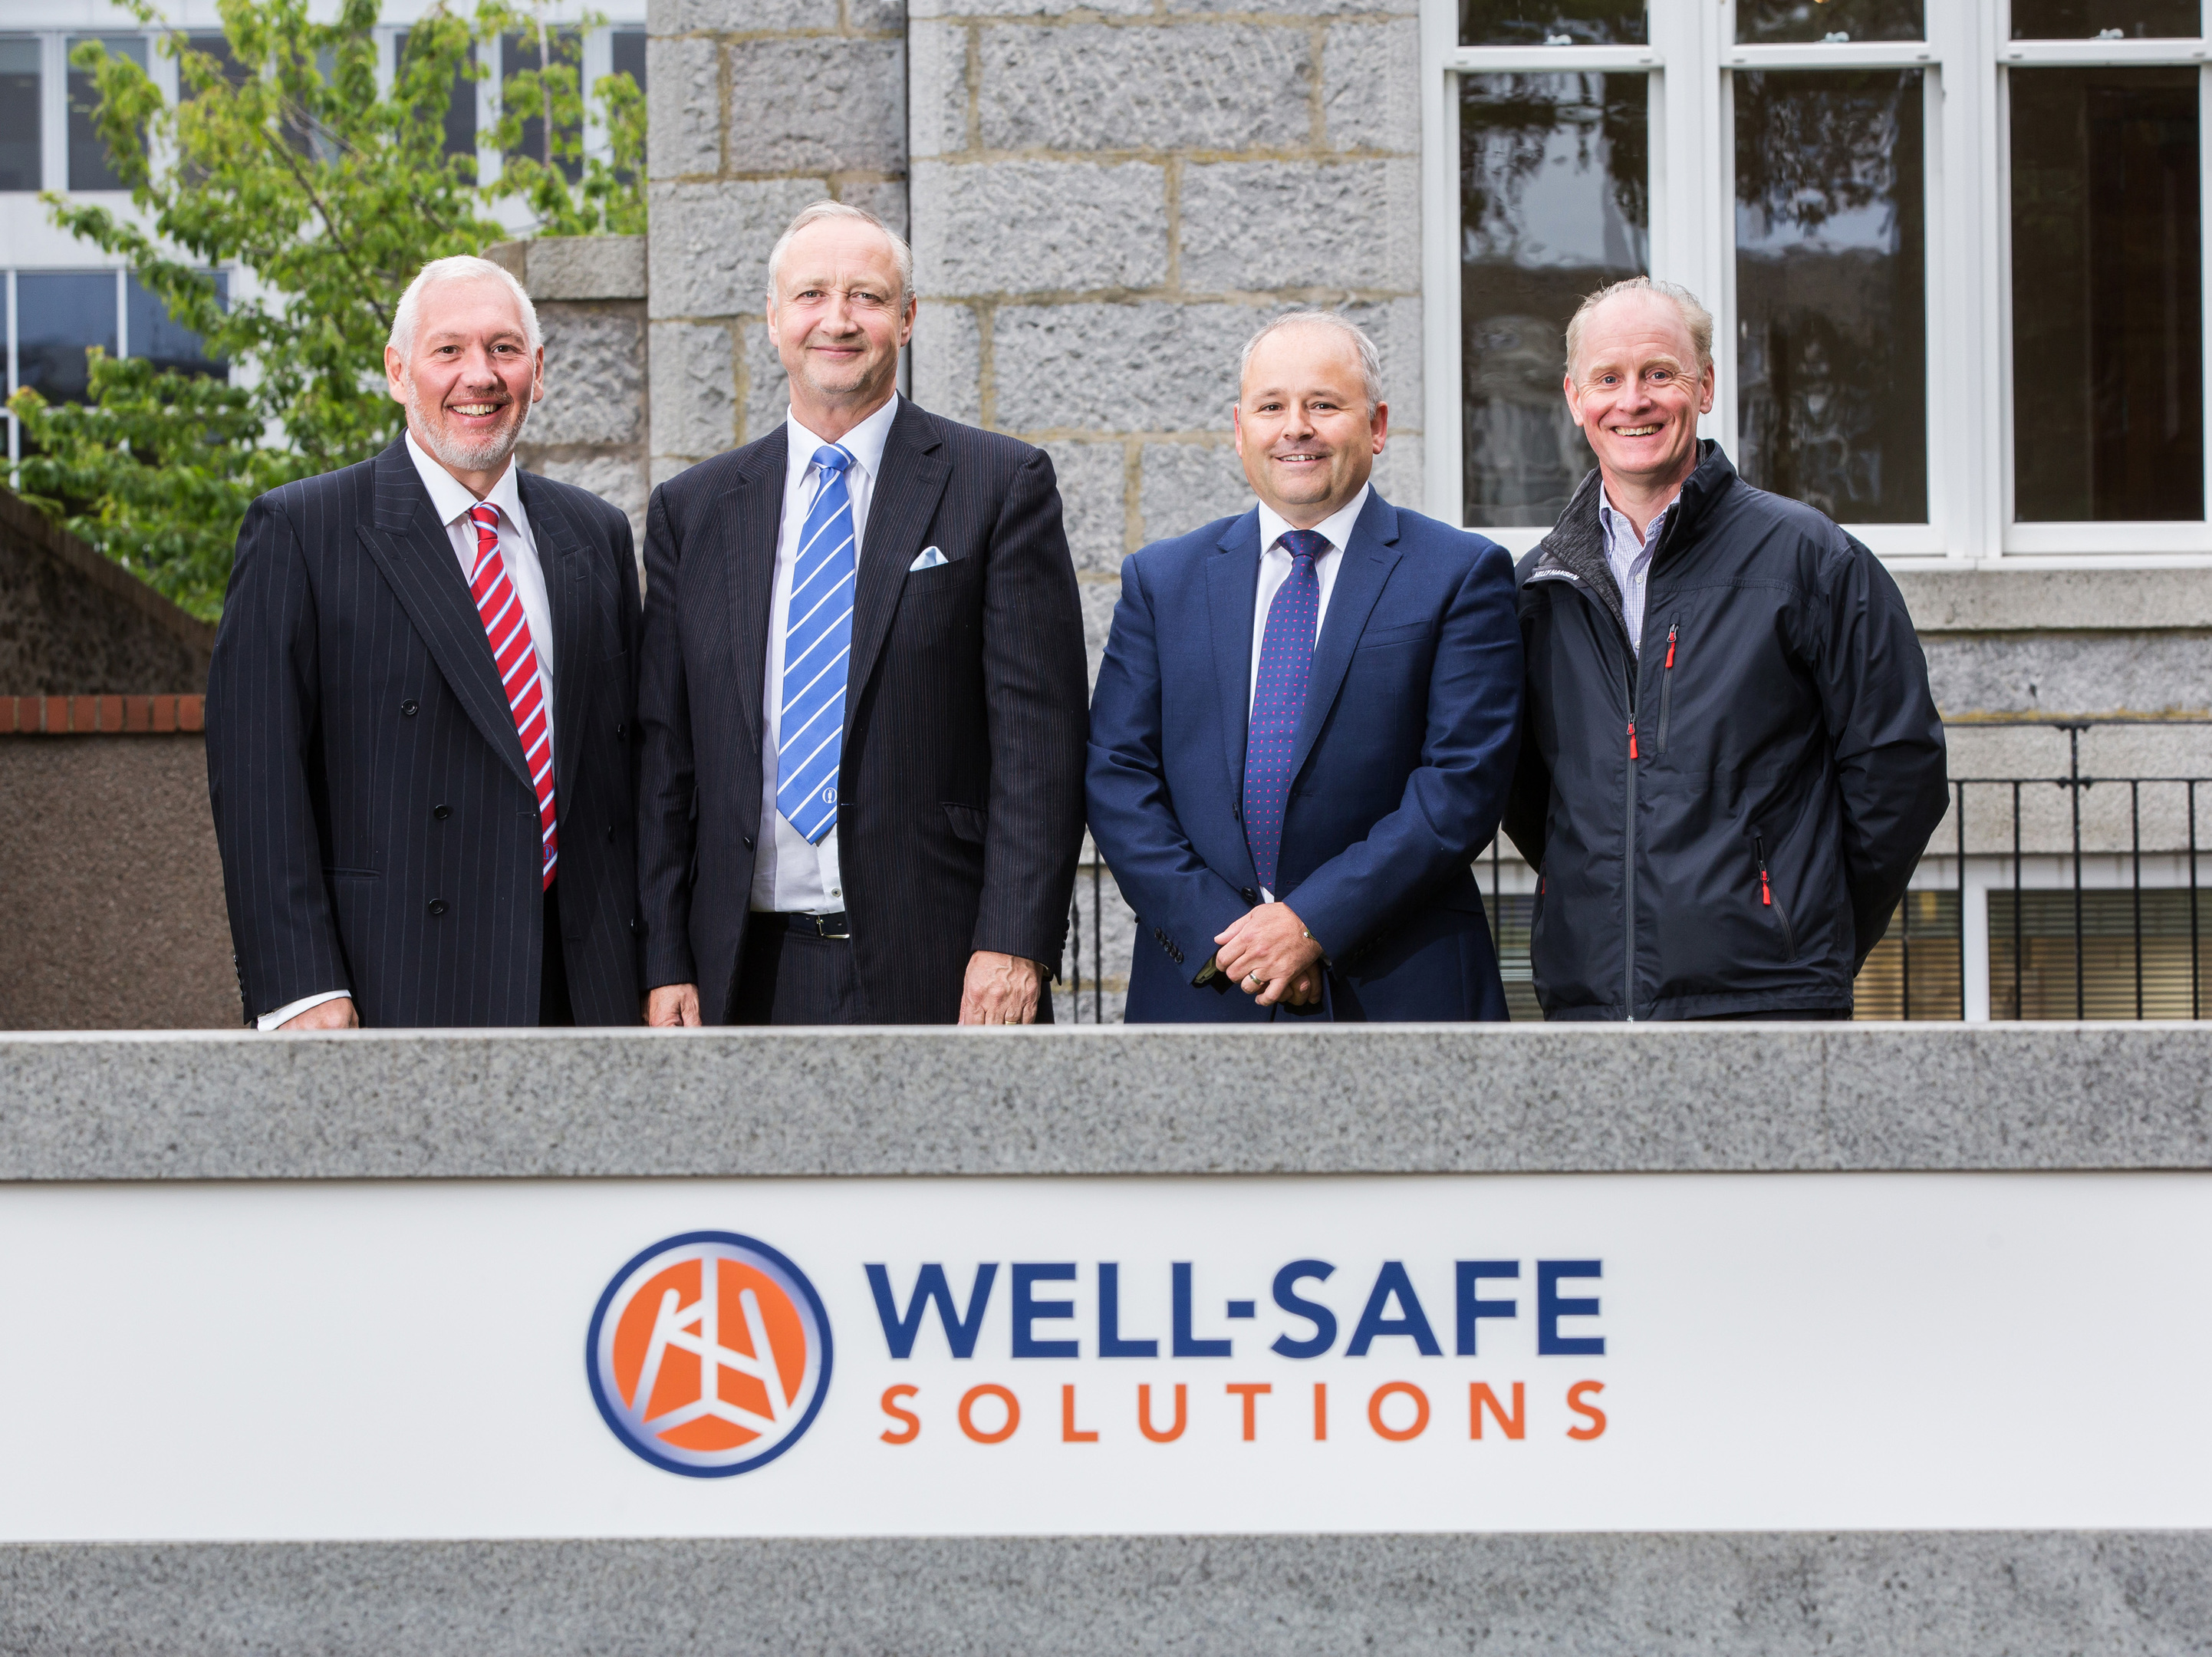 (L to R) Graeme Murray – Legal and commercial director, Mark Patterson – Executive director, Phil Milton - CEO, Glenn Wilson - chief technical officer.